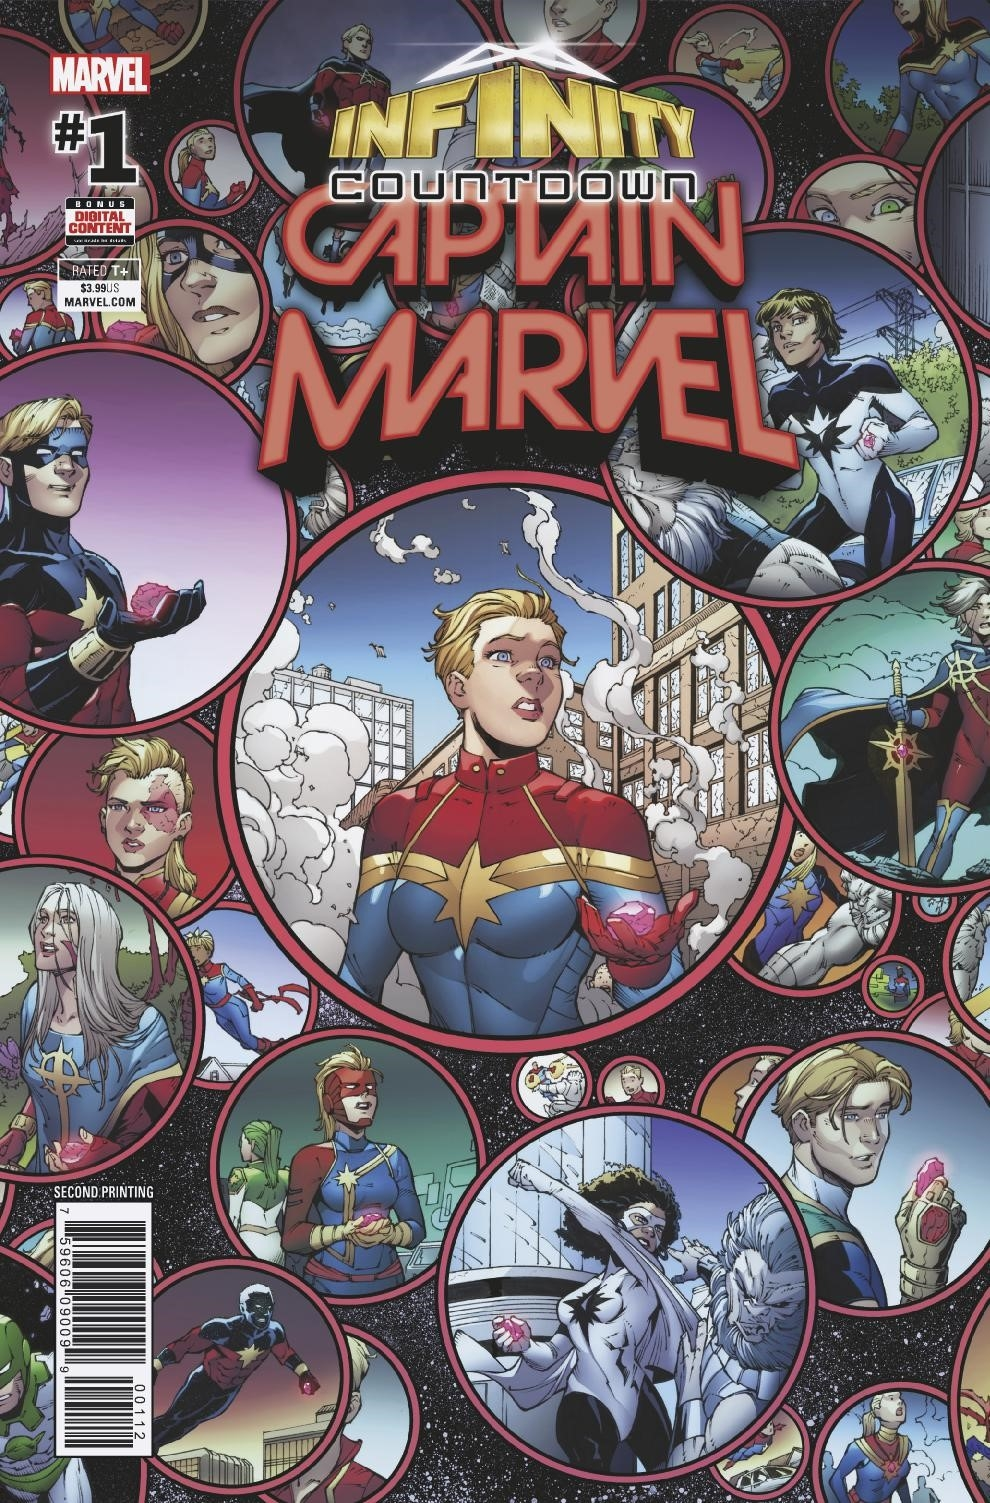 INFINITY COUNTDOWN CAPTAIN MARVEL #1 2ND PTG OLOTEGUI VAR